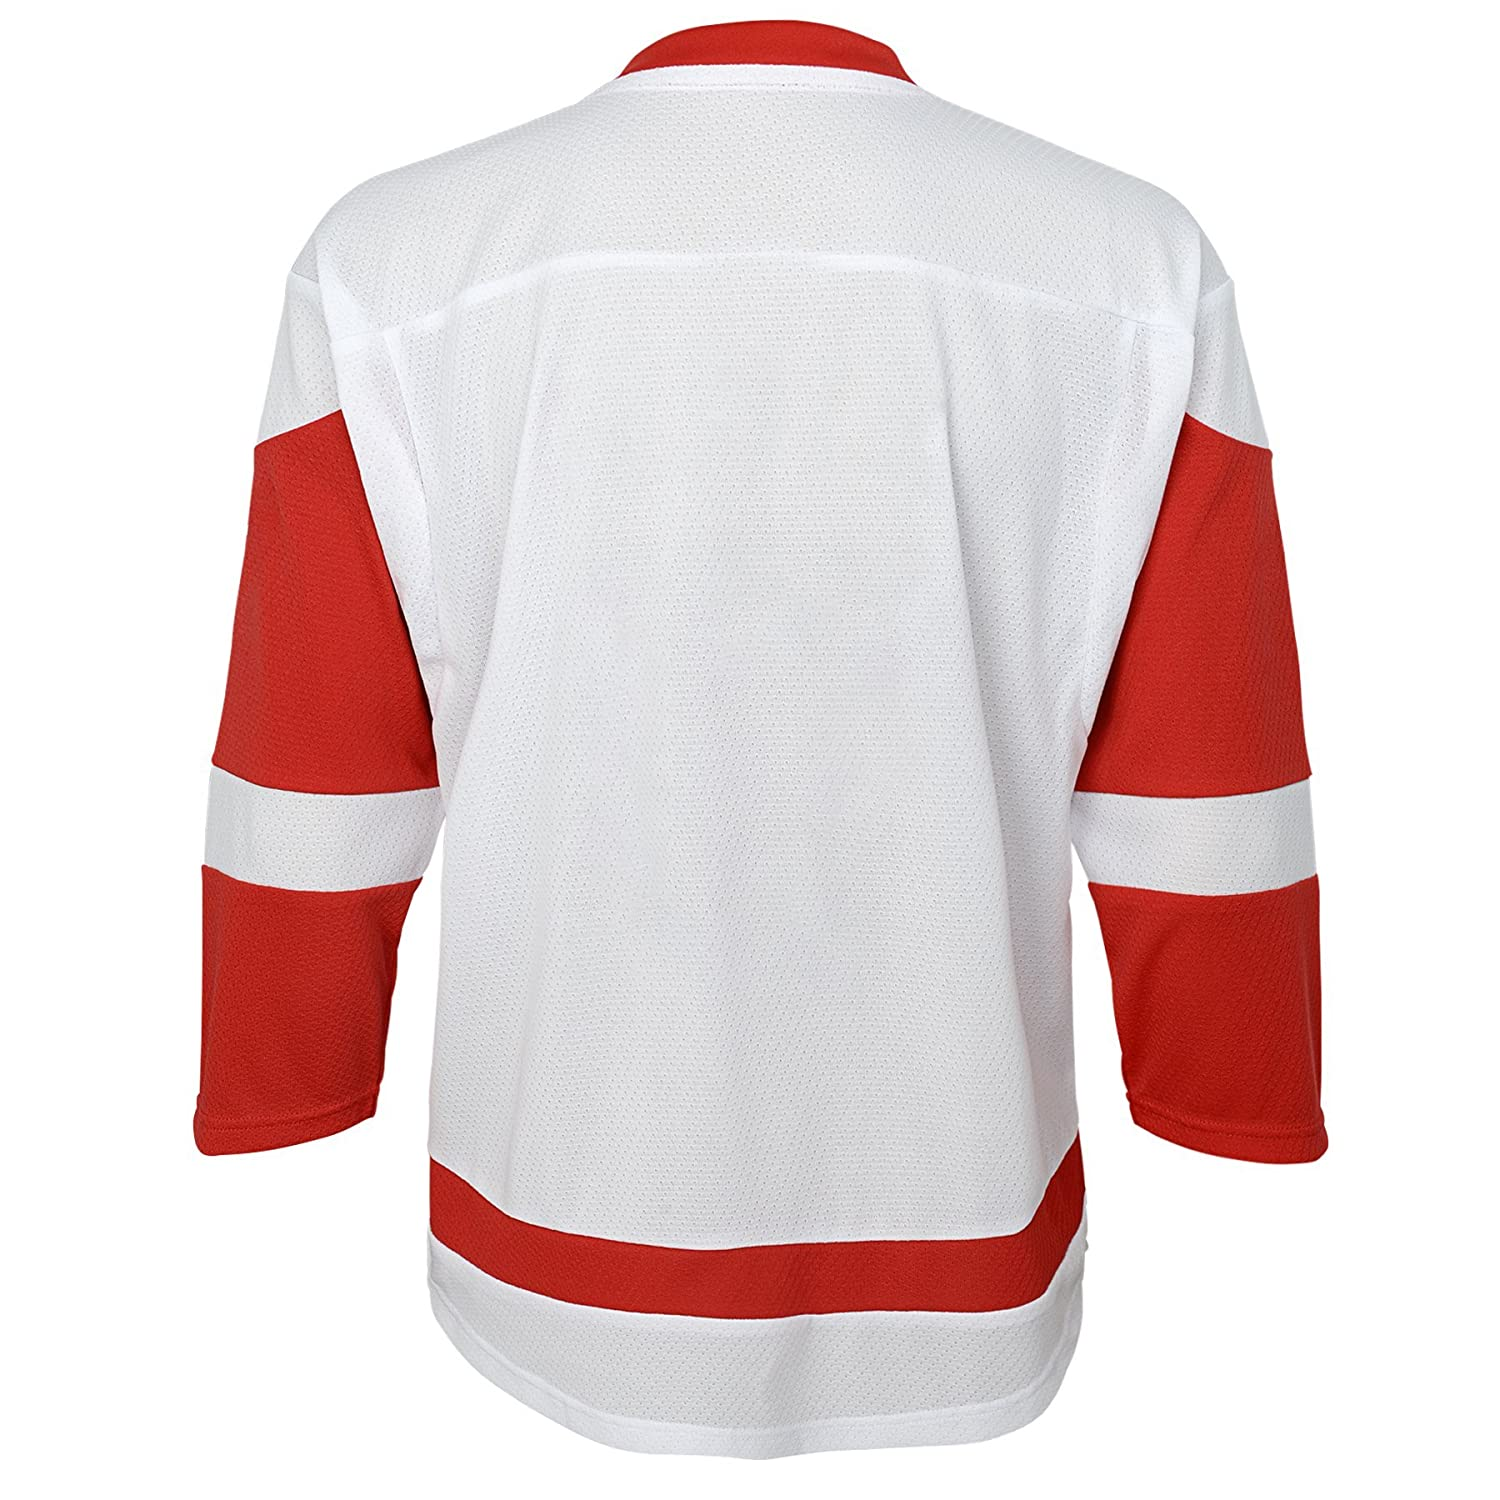 6-10 Youth Small//Medium White NHL Detroit Red Wings Youth Outerstuff Replica Jersey-Away